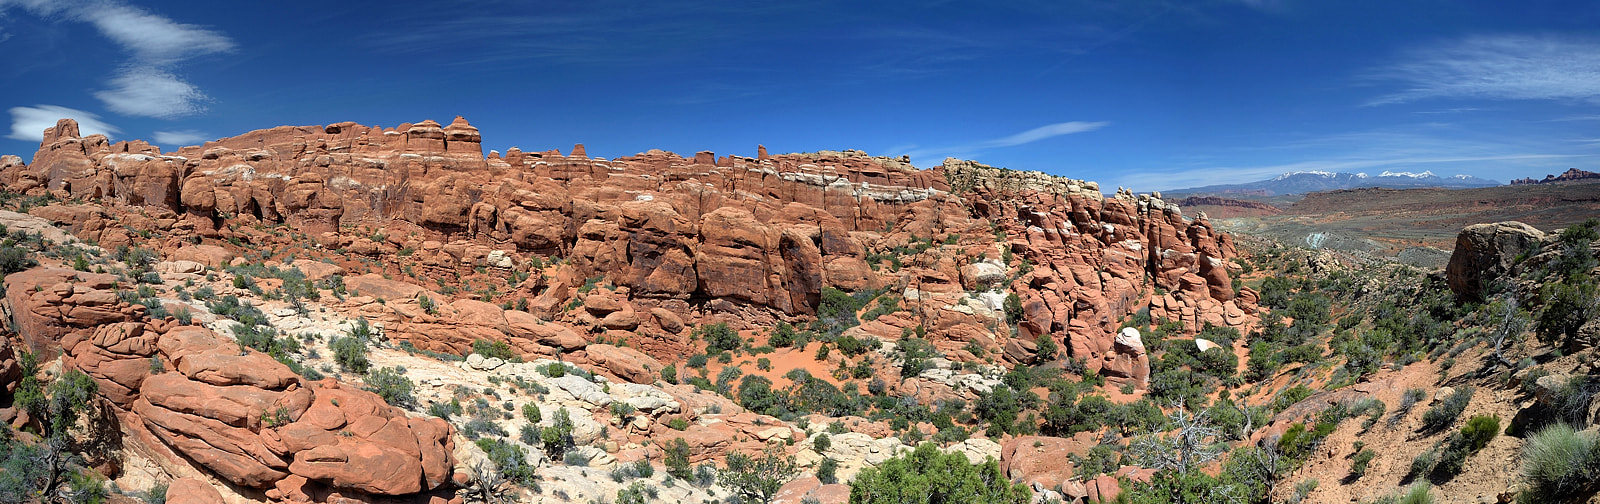 Photograph Fiery Furnace Panorama by Jimmy De Taeye on 500px